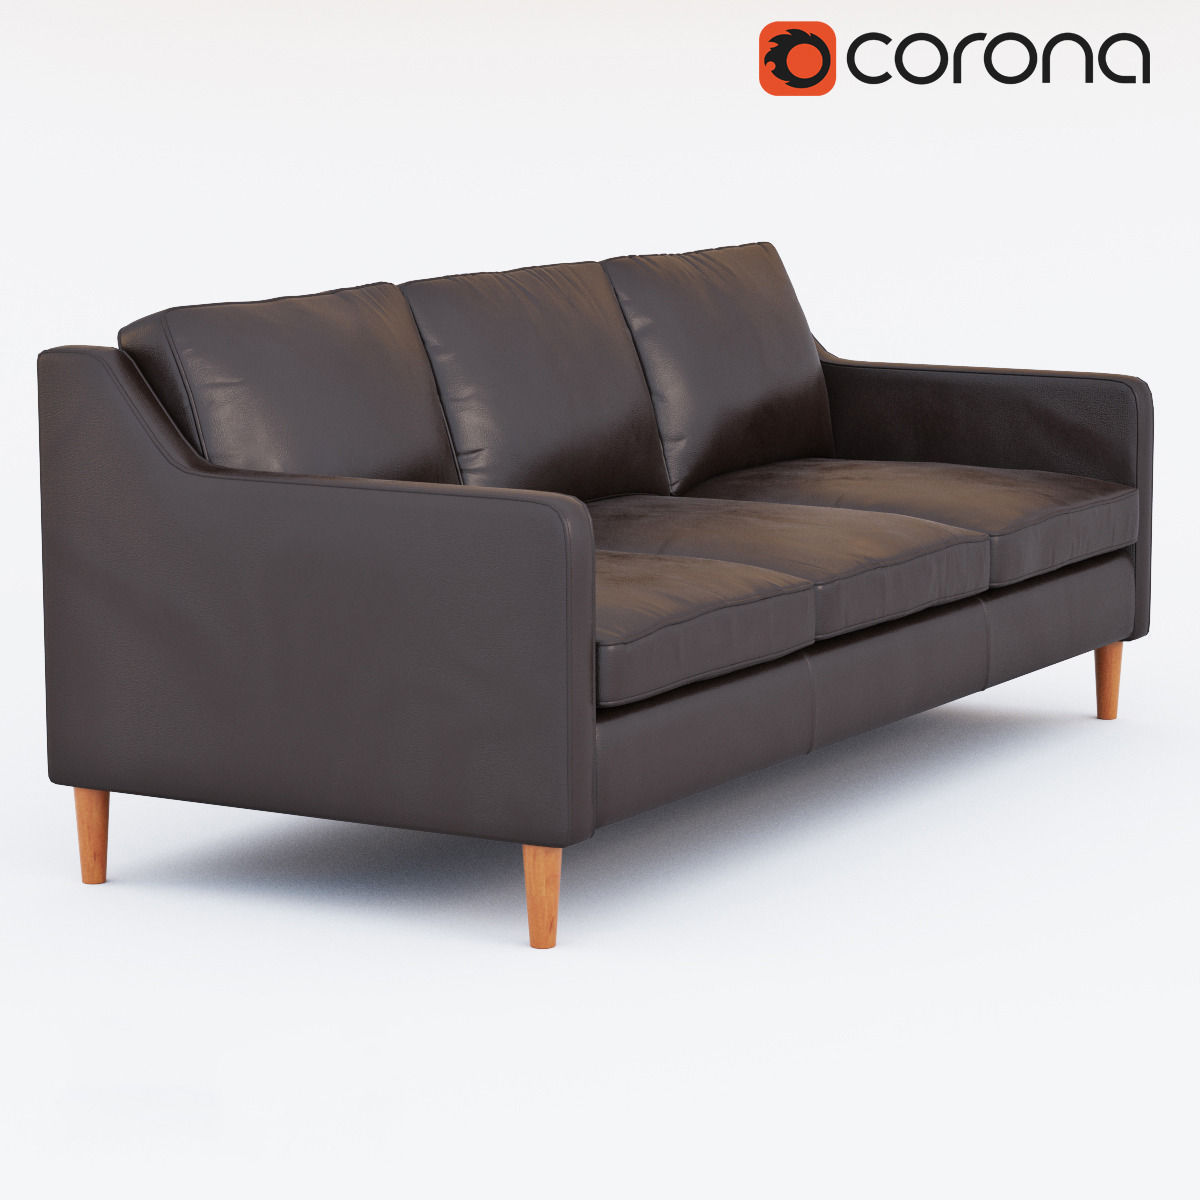 West Elm Hamilton Leather Sofa 3d Model Max Obj Fbx Mtl 1 ...